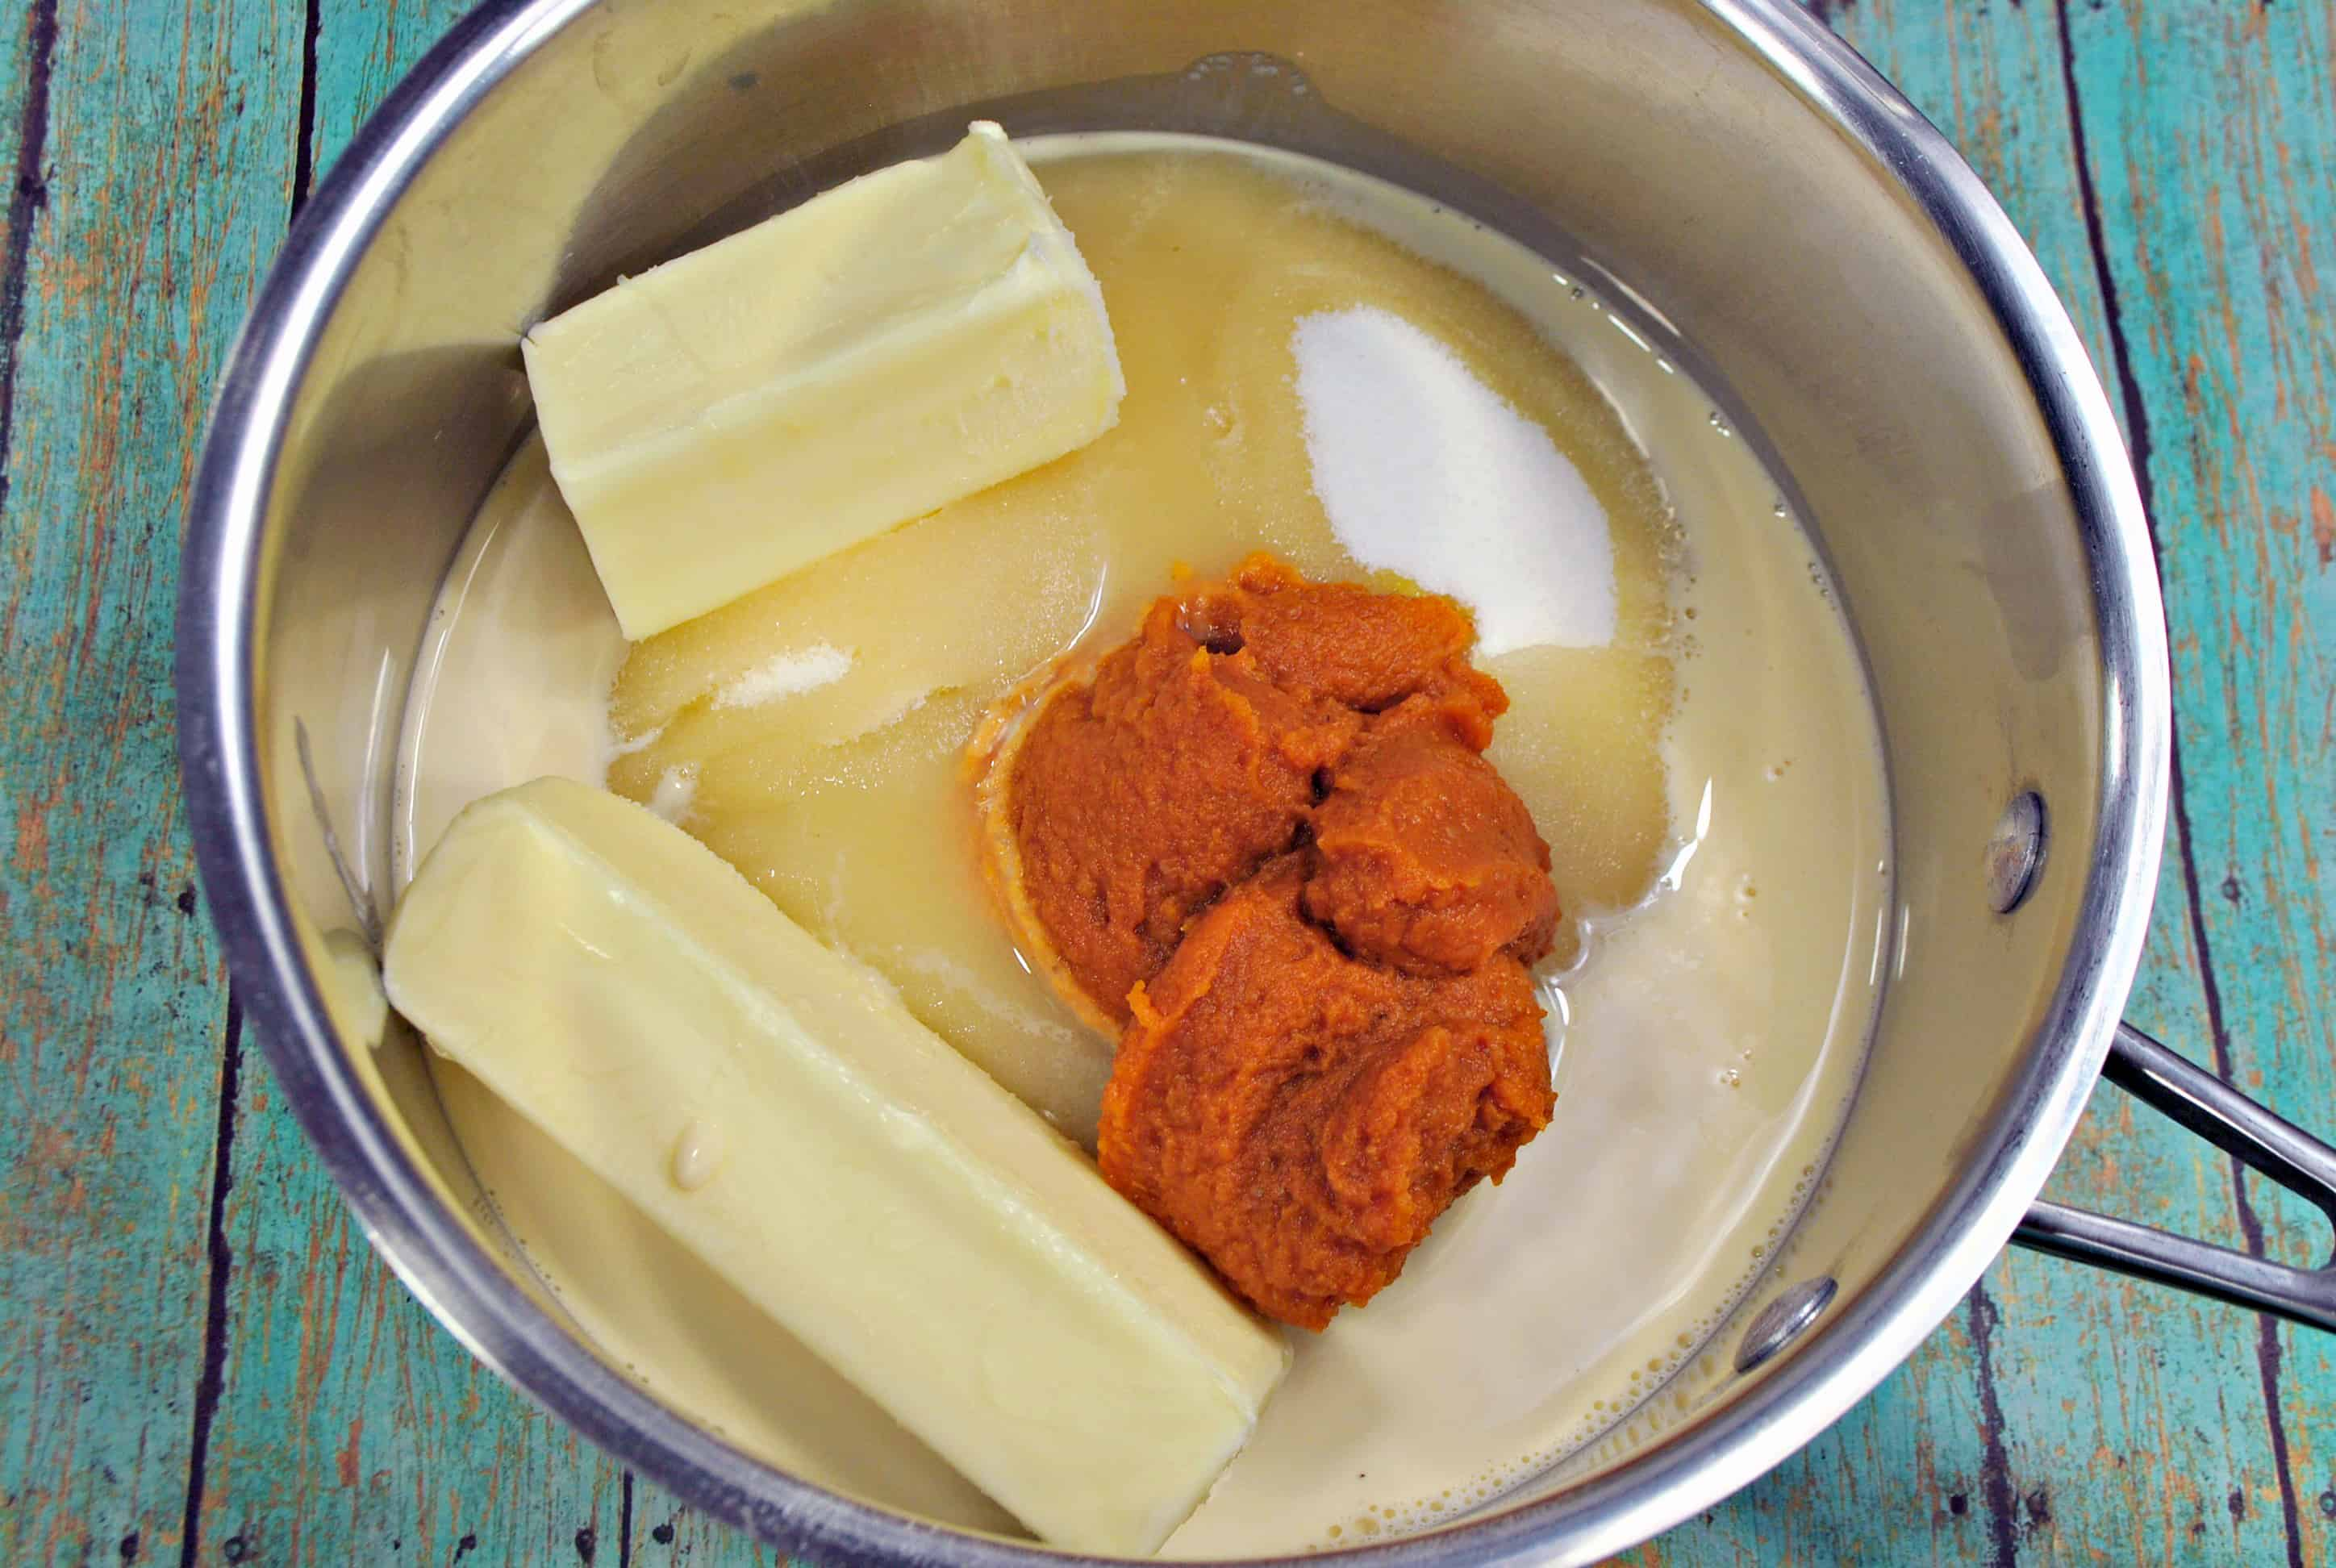 butter, pumpkin and sugar in a bowl